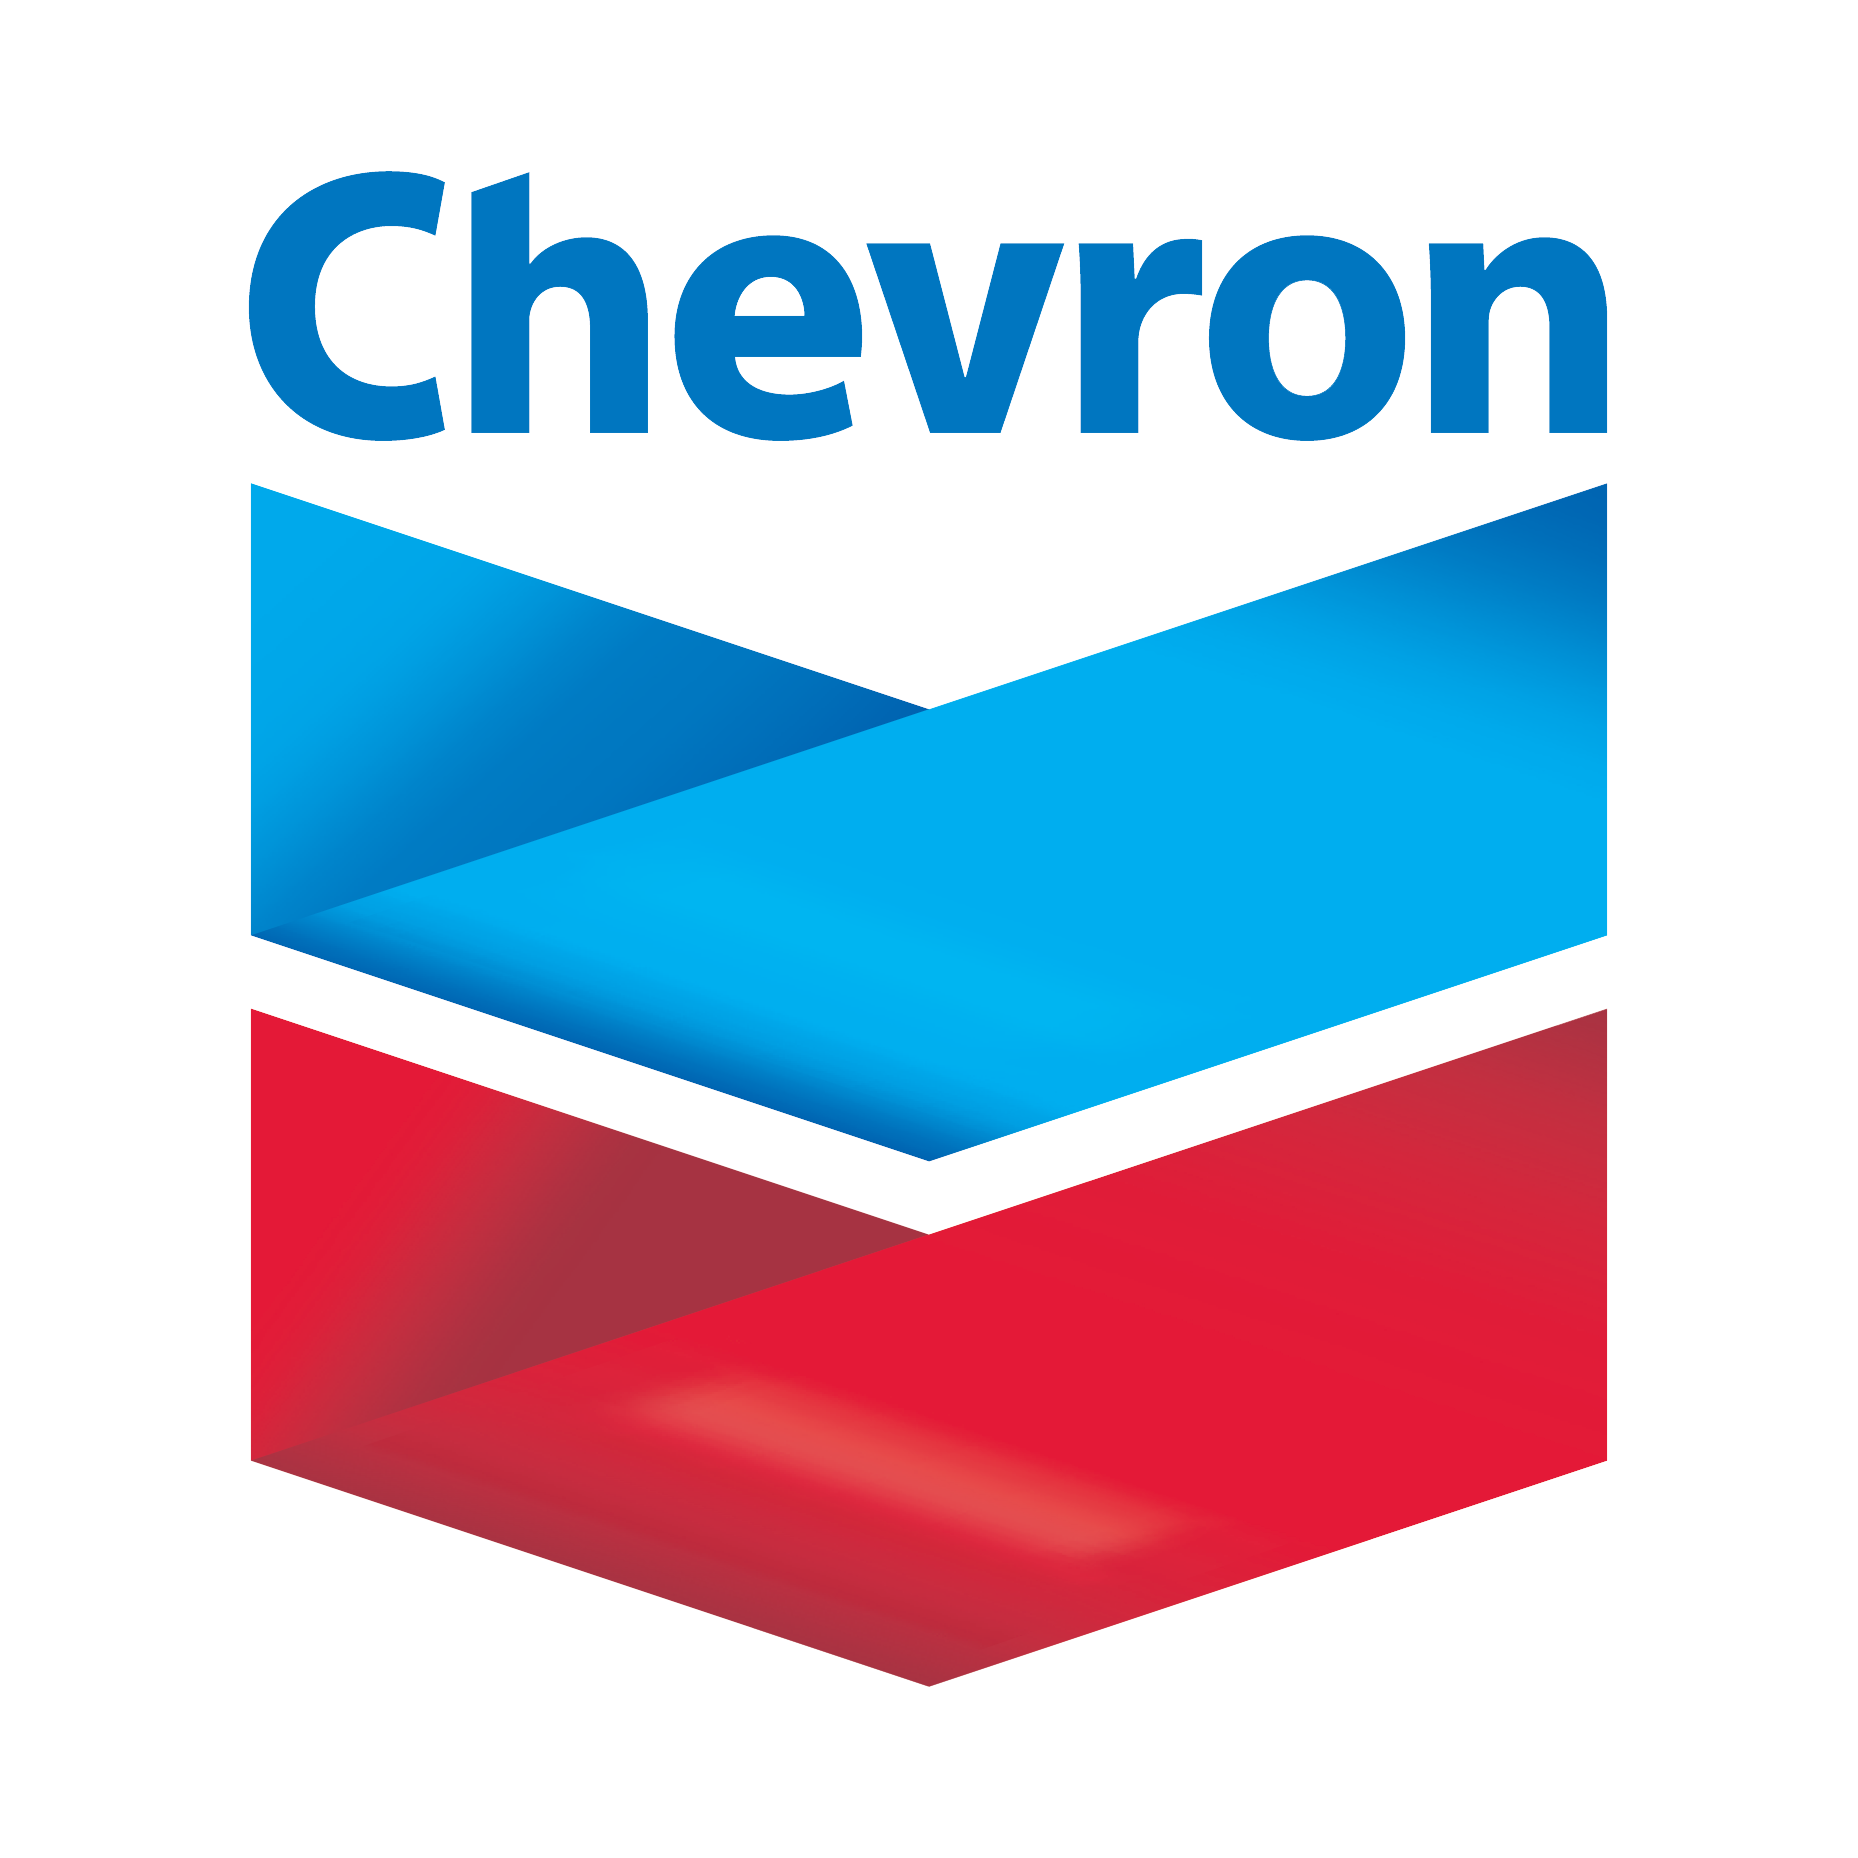 chevron-logo-transparent.png